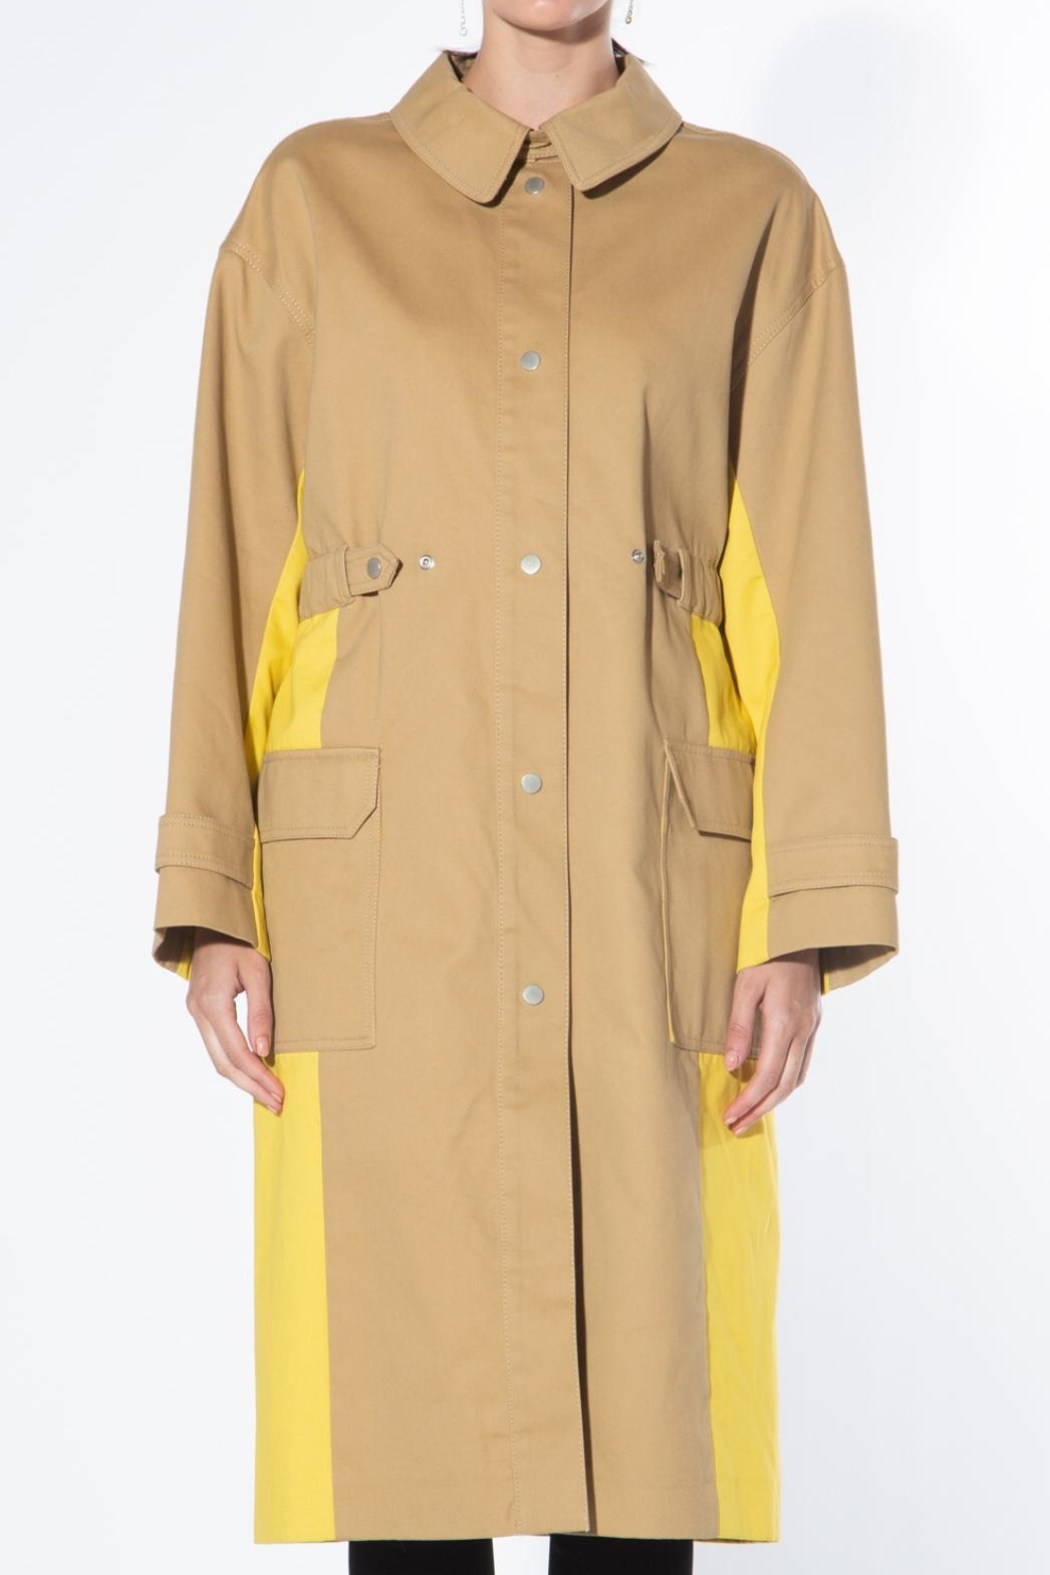 BEULAH STYLE Two Tone Trench Coat - Front Full Image